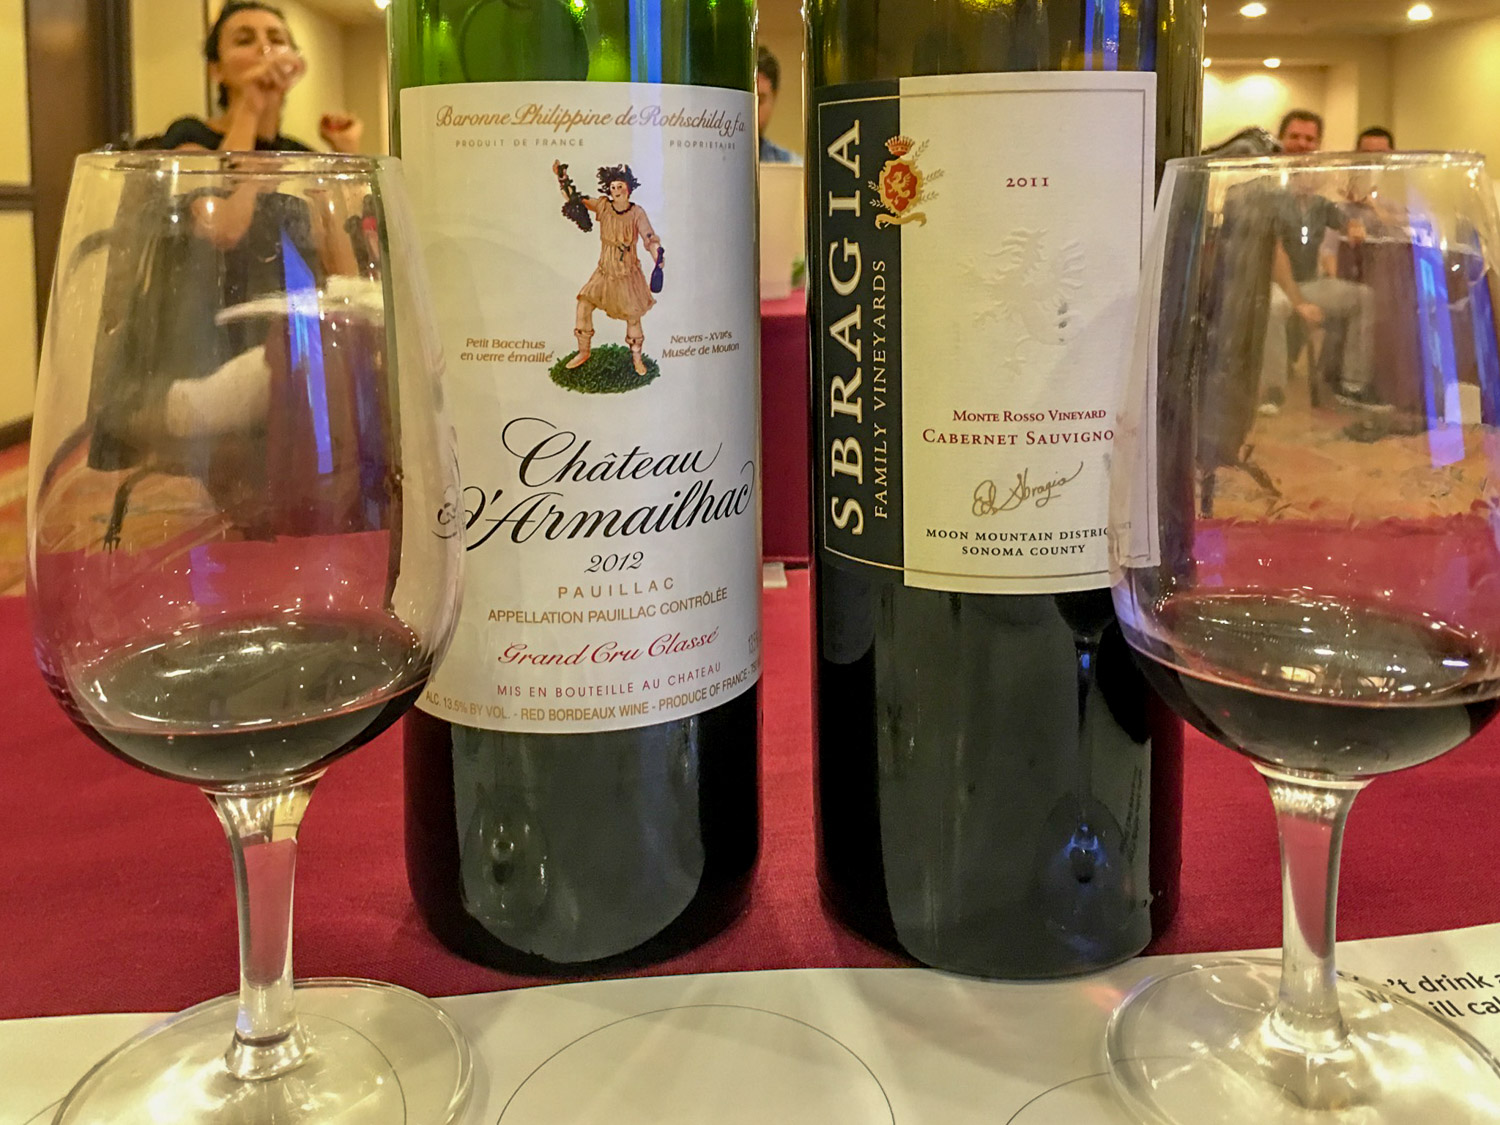 Comparing different winemaking styles with the same grapes is an important part of the WSET approach to appreciating wine (Photo: Lyn Farmer)